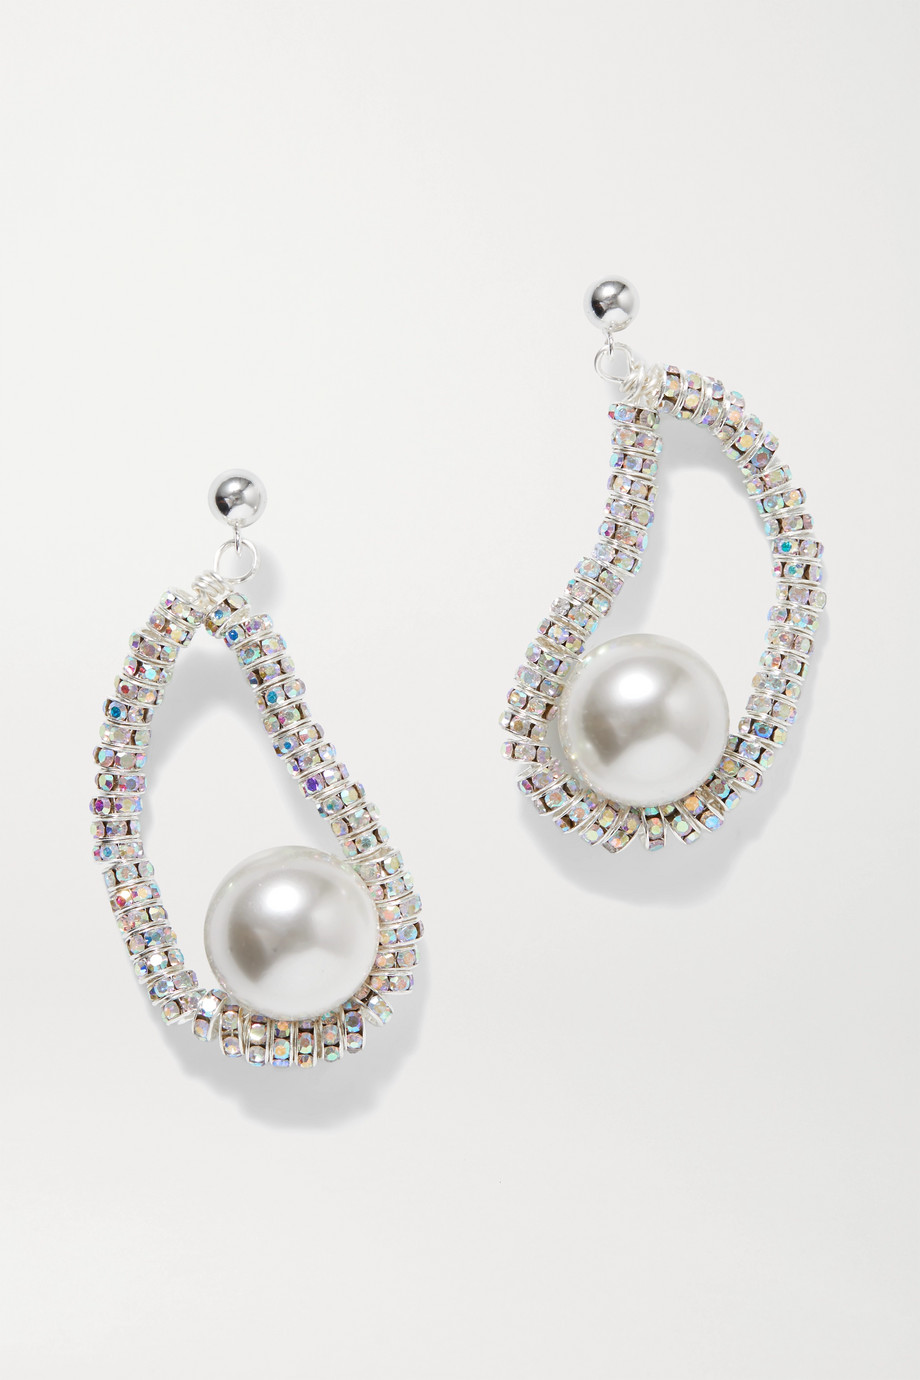 PEARL OCTOPUSS.Y Mini Oysters silver-plated, crystal and faux pearl earrings